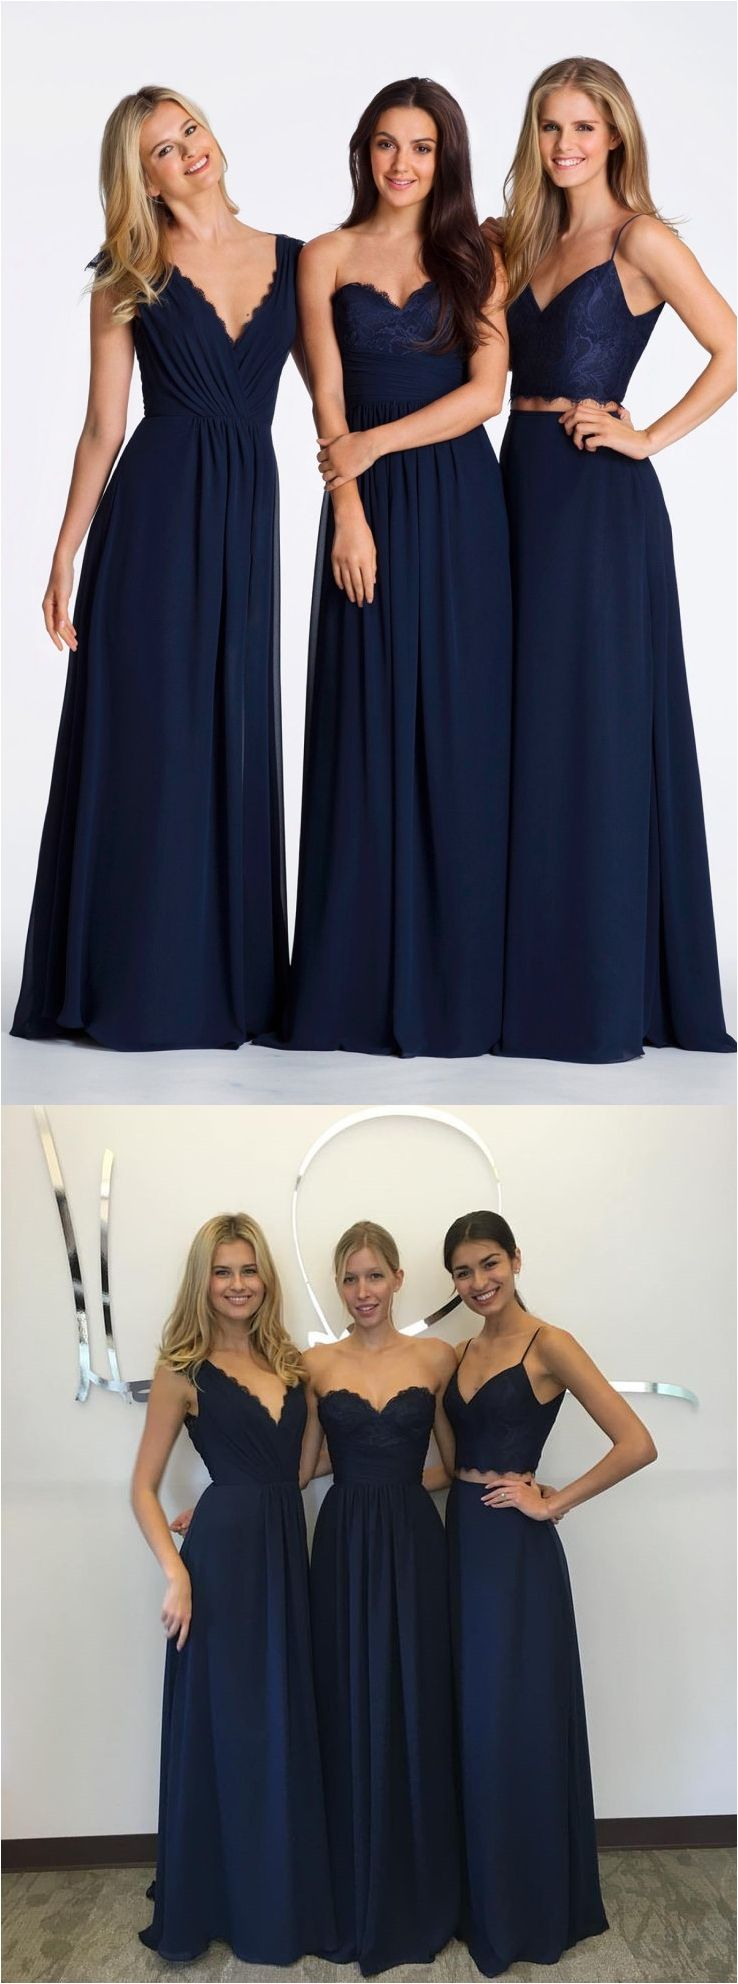 Simple and elegant long bridesmaid dresses ideas for your best